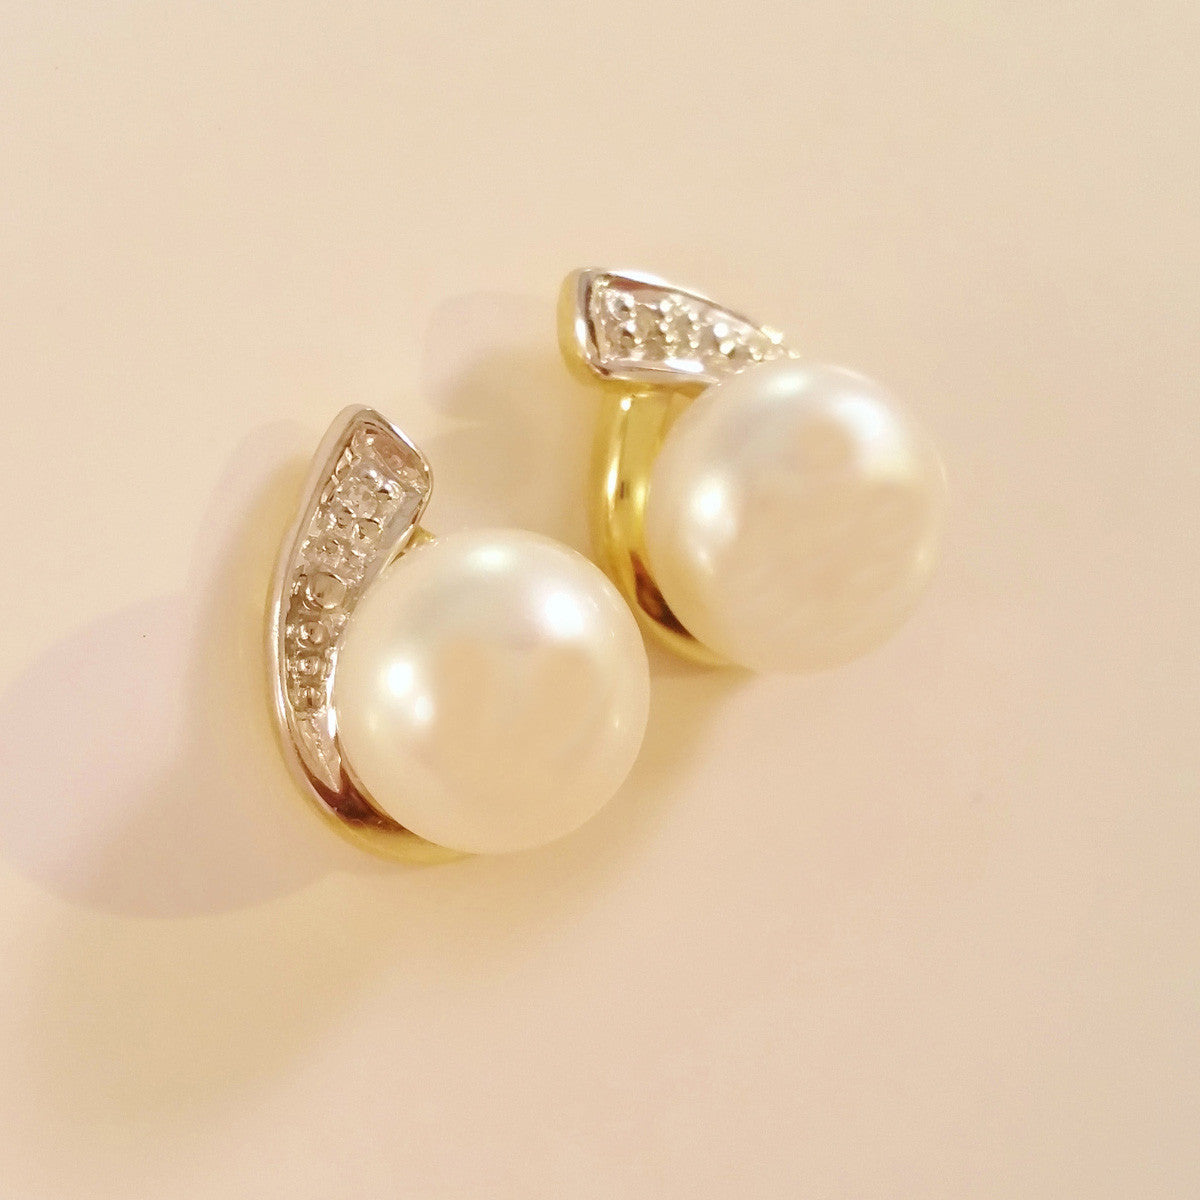 9K SOLID GOLD 7.00MM FRESHWATER PEARL AND DIAMOND EARRINGS.